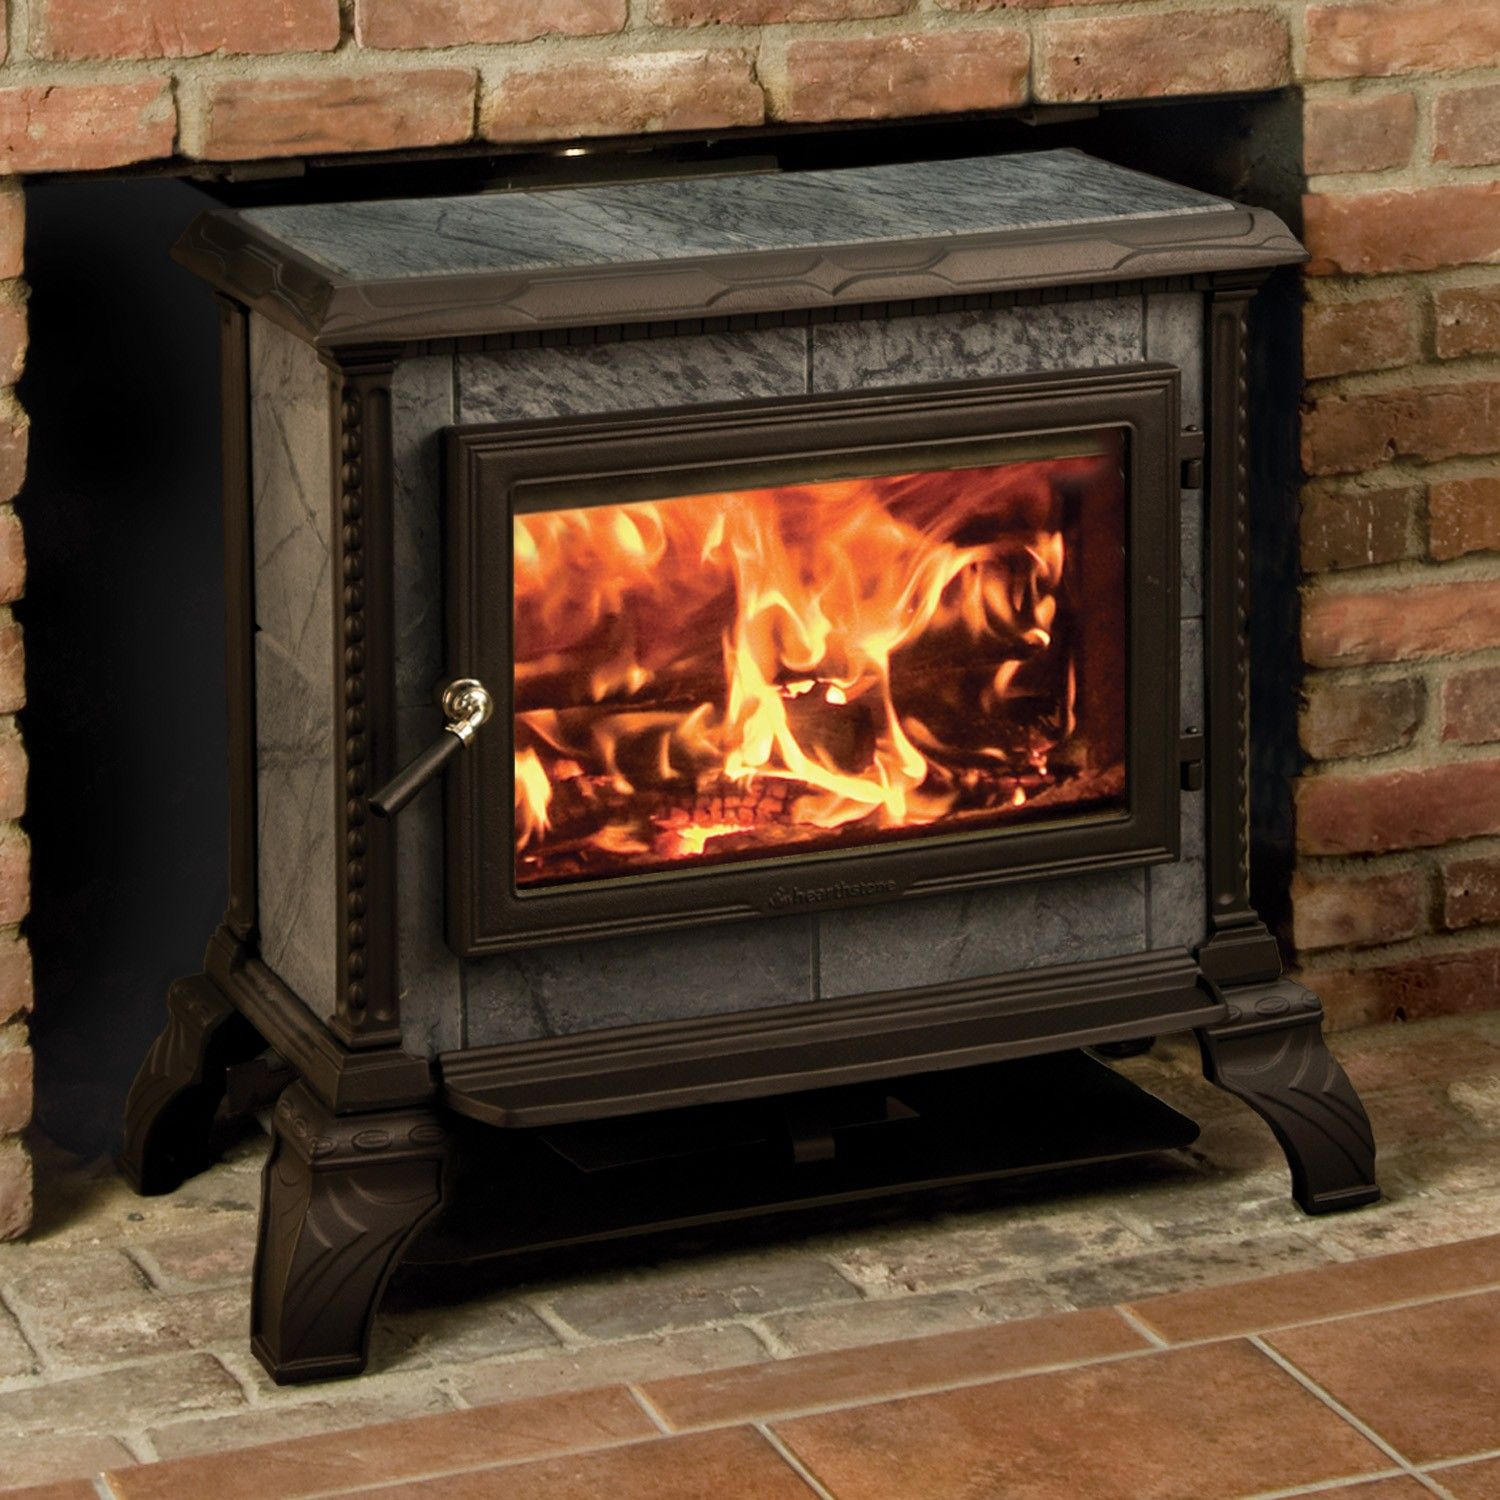 Hearthstone Homestead One Of The Most Efficient Wood Stoves Out There 83 5 Also Clad In